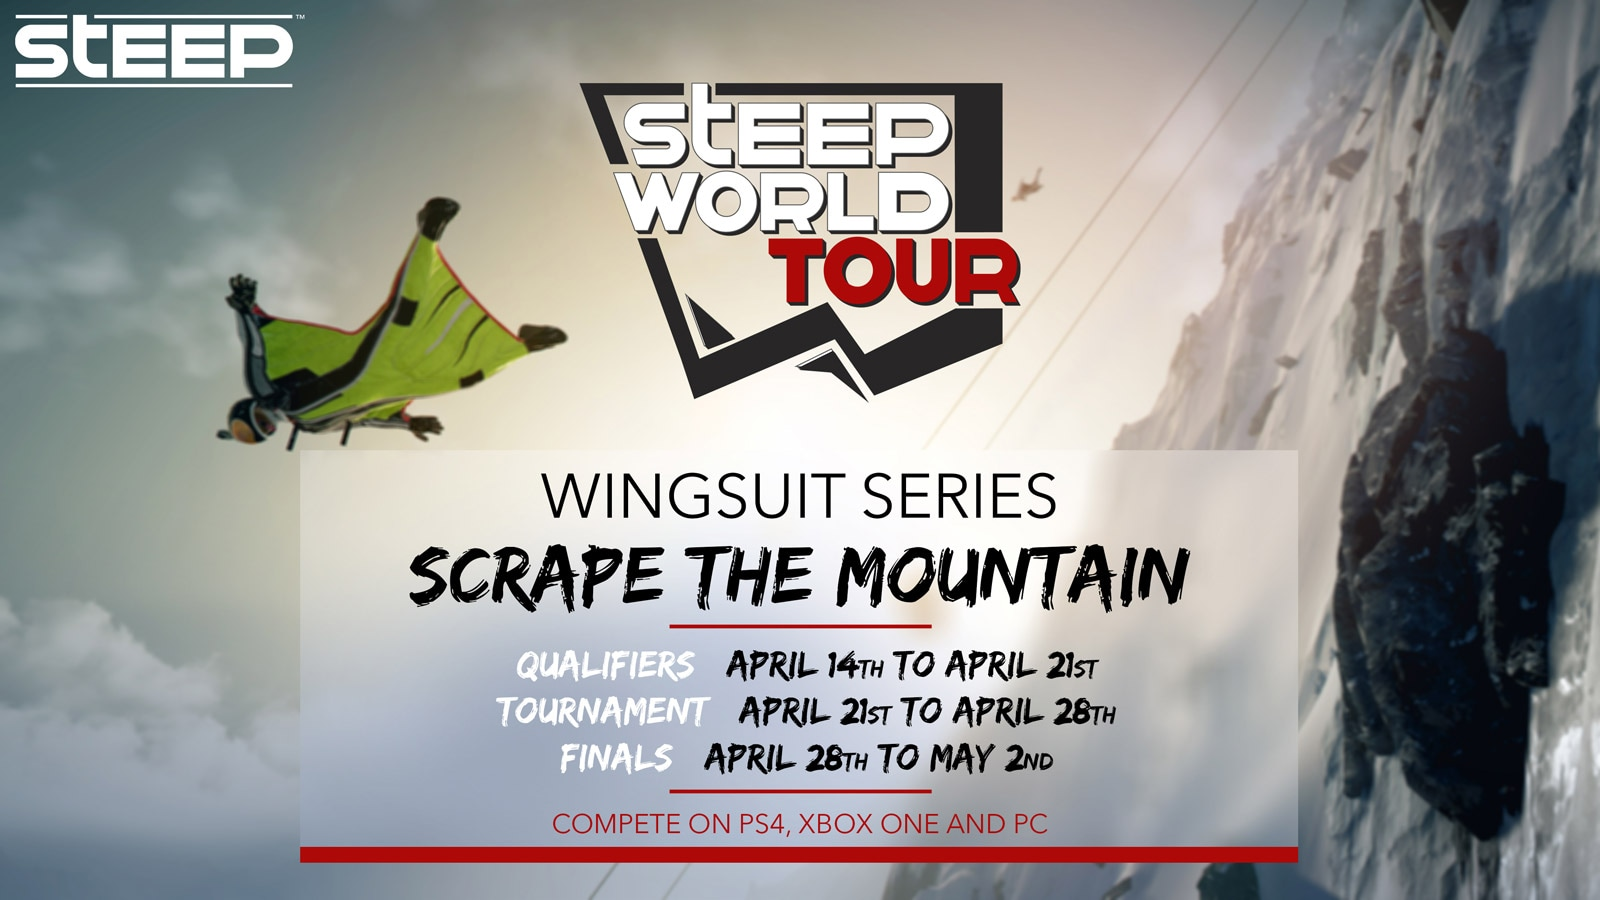 [2017-04-14] Wingsuit World Tour - News - THUMB